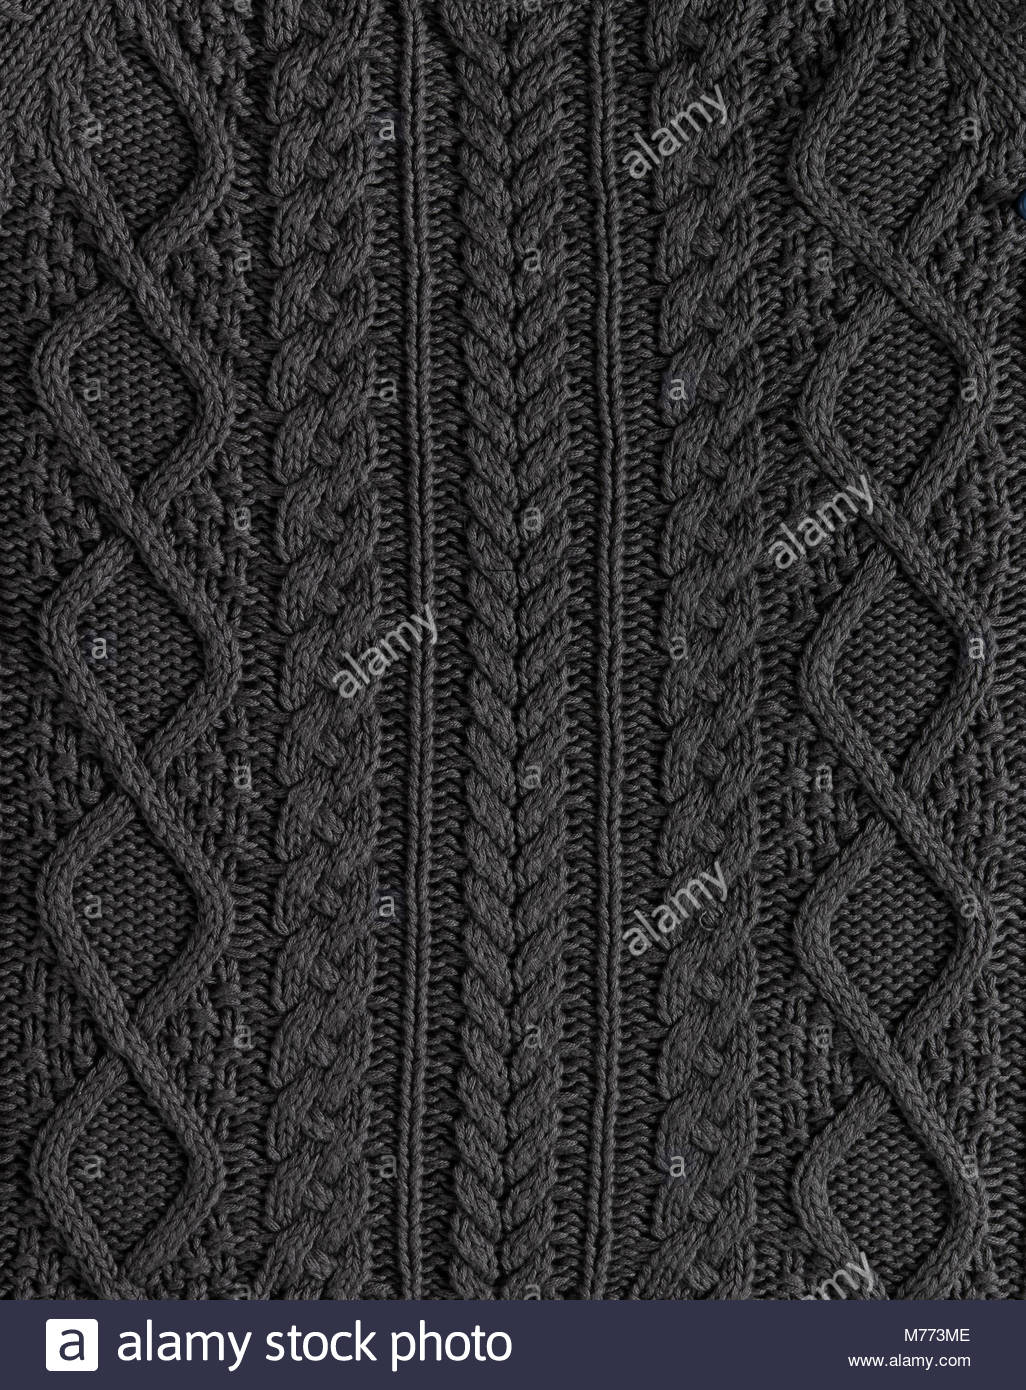 Cable Knitting Stockfotos & Cable Knitting Bilder - Alamy